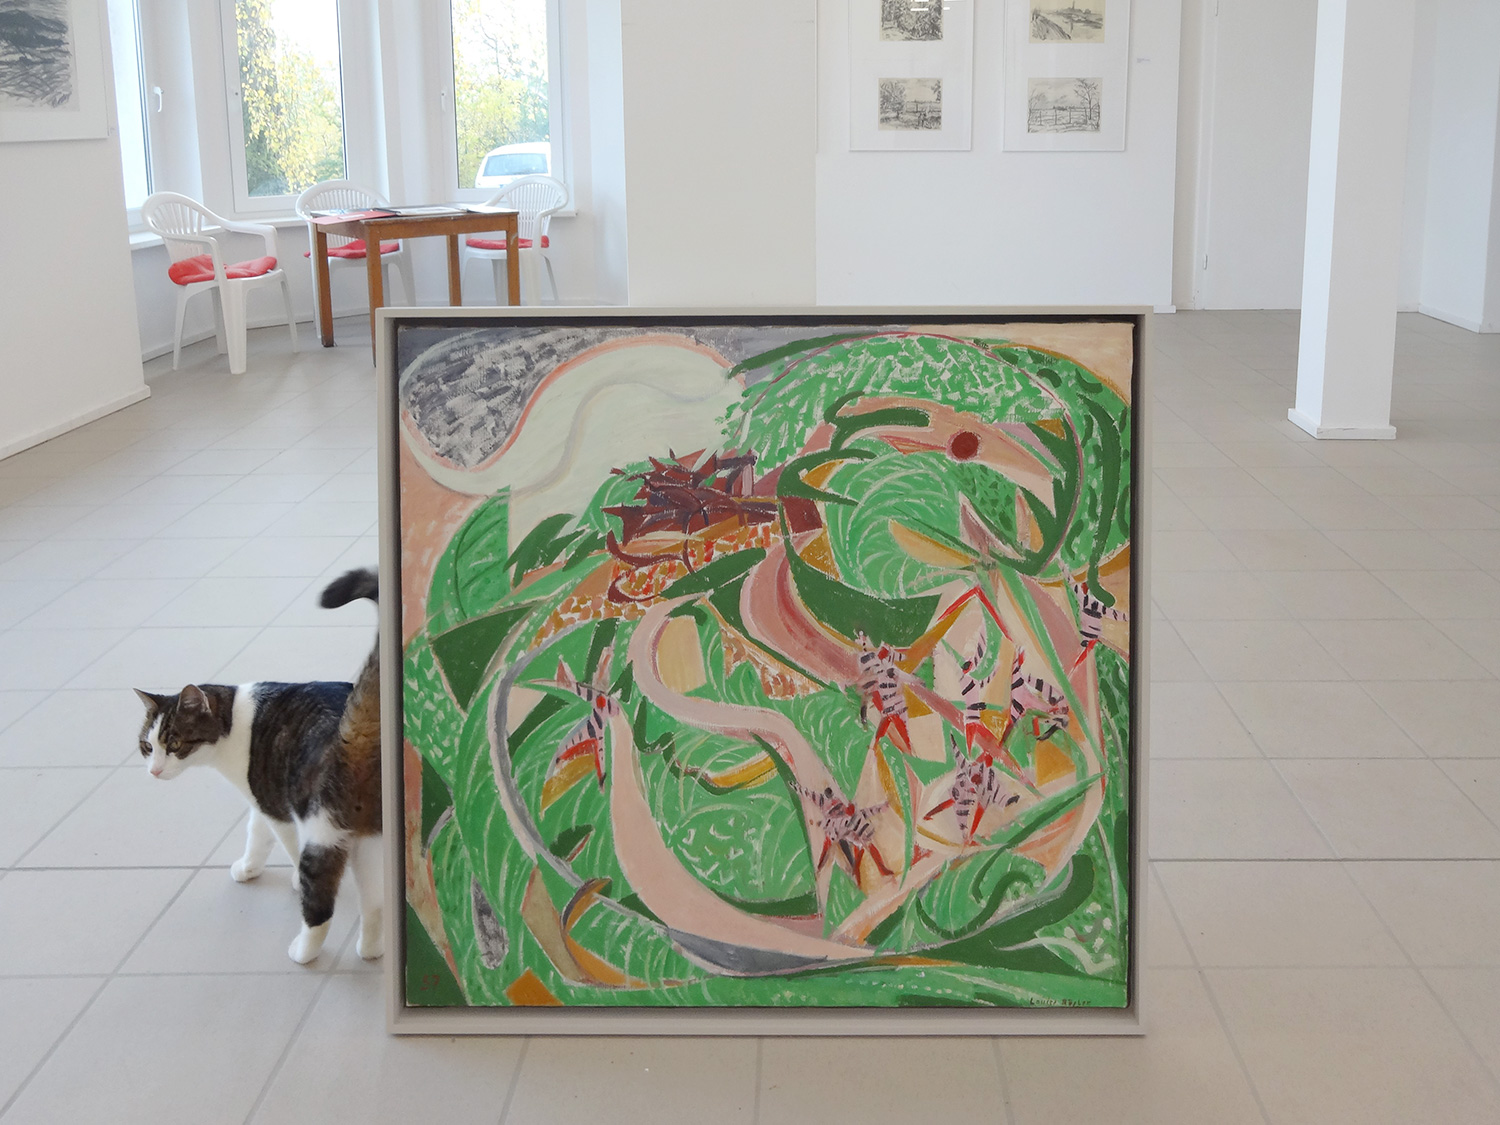 During a visit to the Museum Atelierhaus Rösler-Kröhnke in Ostseebad Kühlungsborn, Voermann took this photograph of a painting by Louise Rösler (and a furry resident).